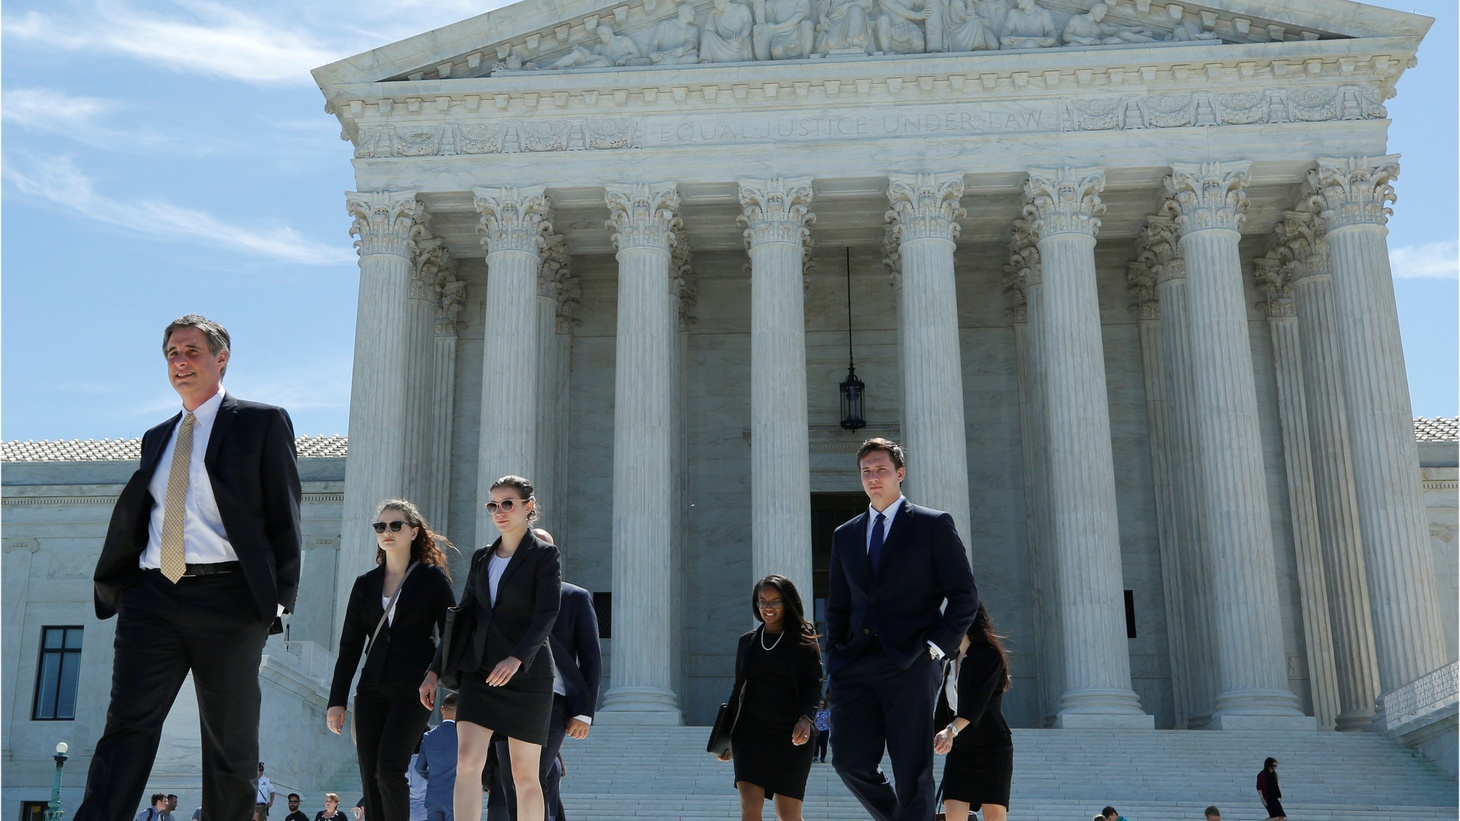 The Supreme Court partially lifted the stay on President Trump's travel ban, and agreed to consider the case when it starts its new term in the fall. The three-month ban was designed to give the government time to review and tighten the vetting process for foreigners coming to the U.S. from six Muslim-majority countries. Since the government has had several months to review its vetting and security processes, is the ban even needed anymore?